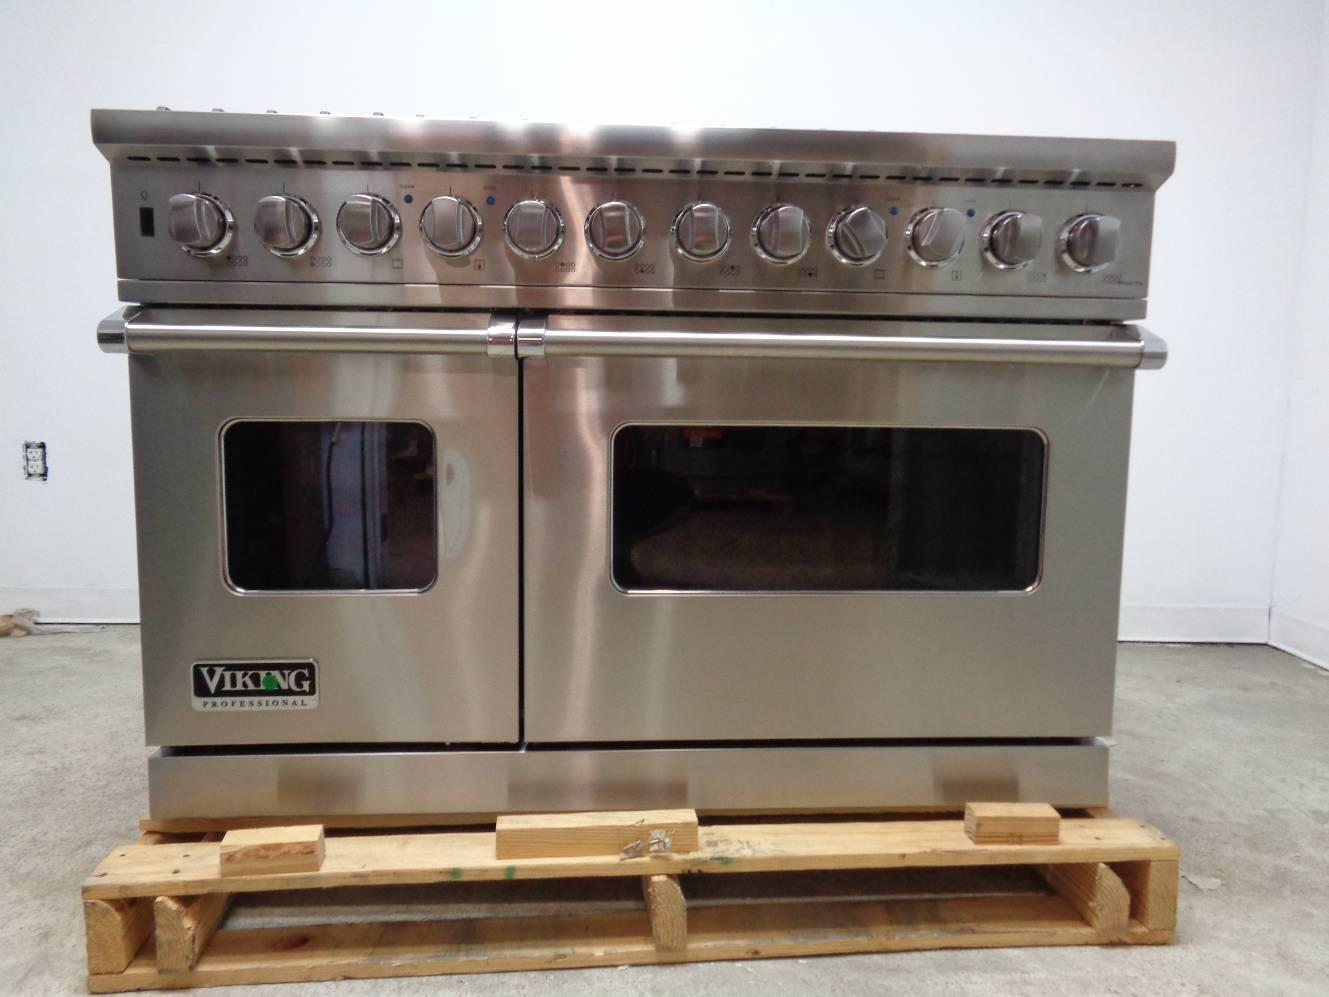 single toaster premiere professional itm wall series oven viking electric